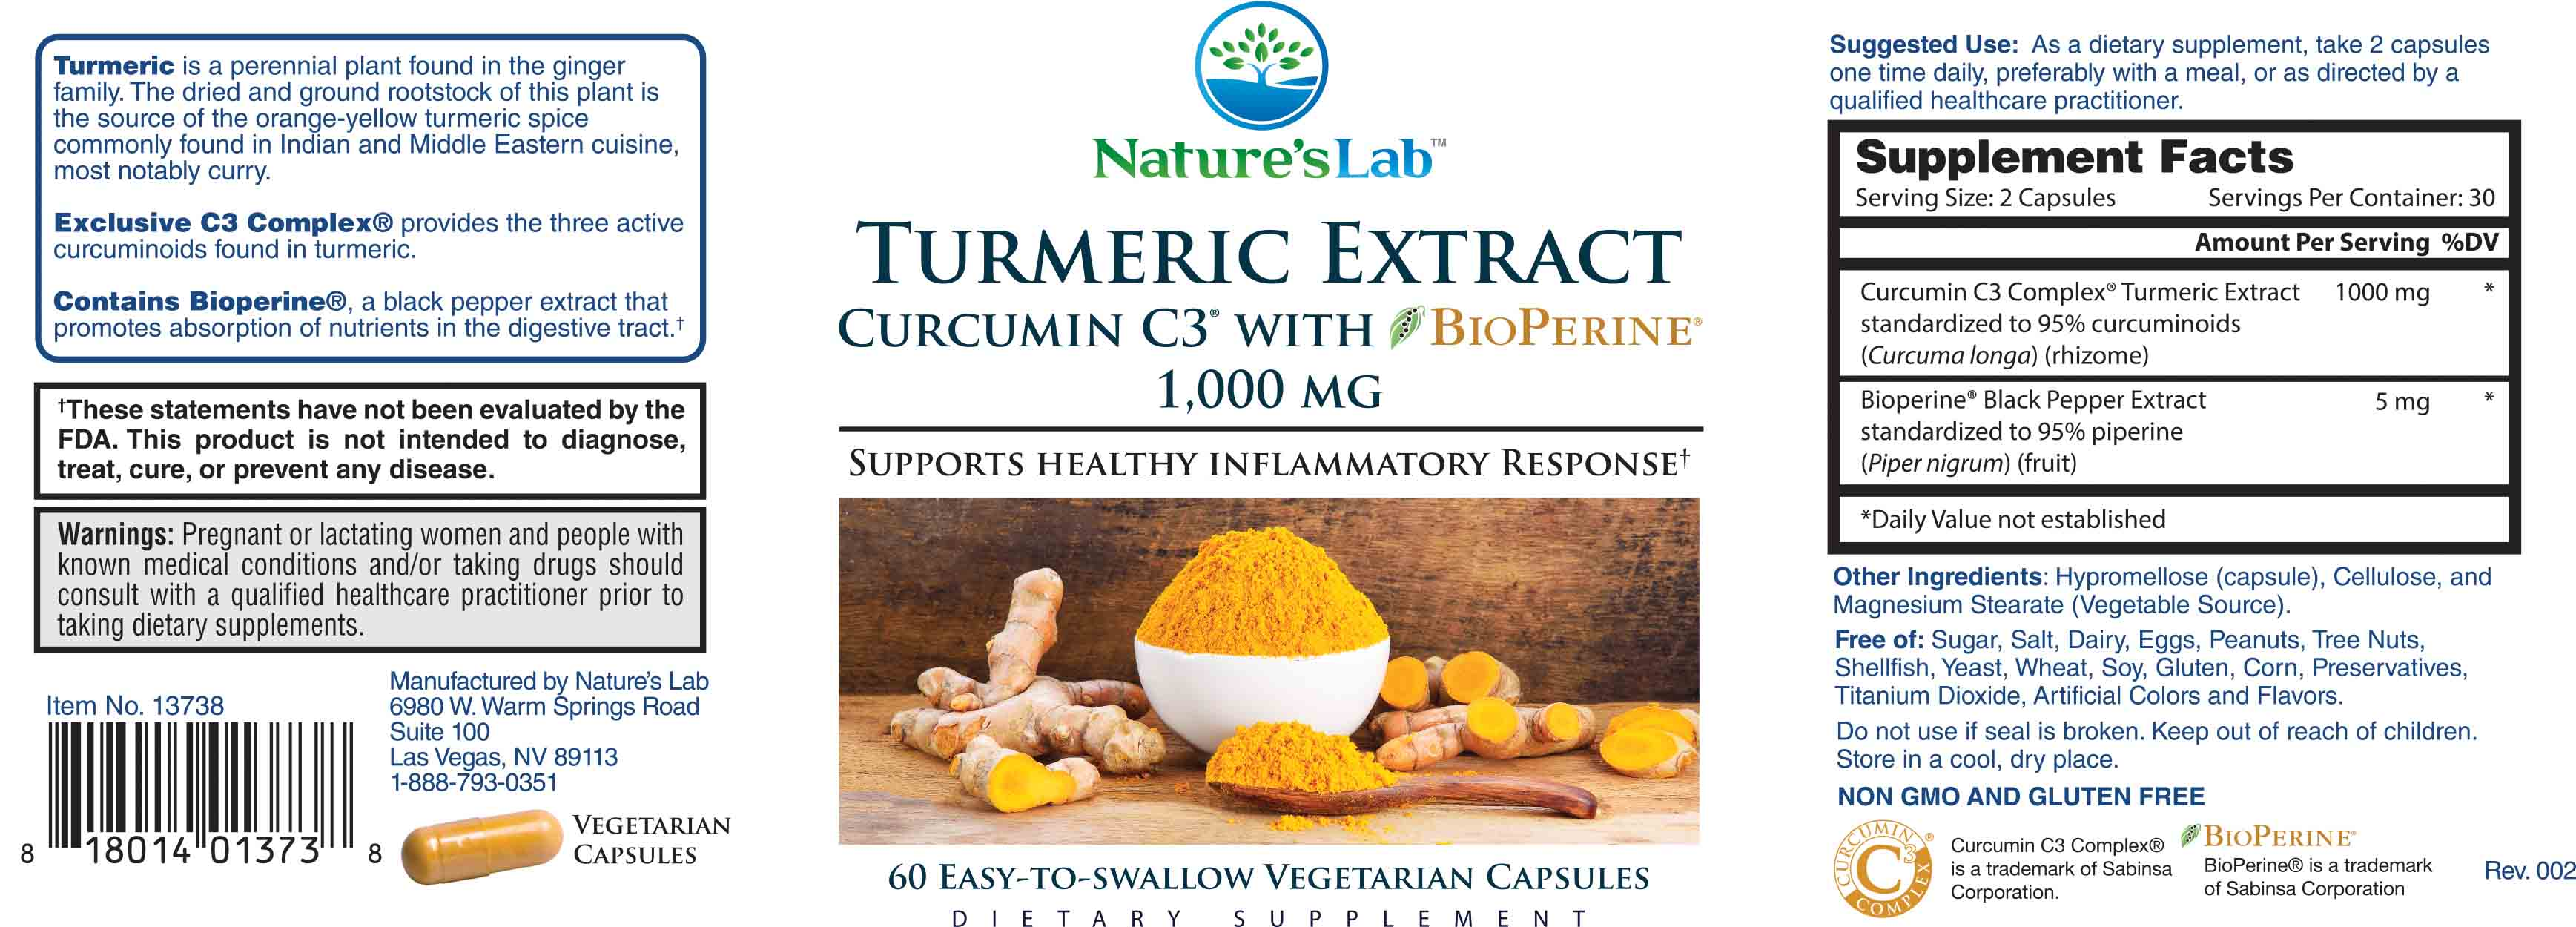 Nature's Lab Turmeric Extract with Curcumin C3 and BioPerine - 60 Count